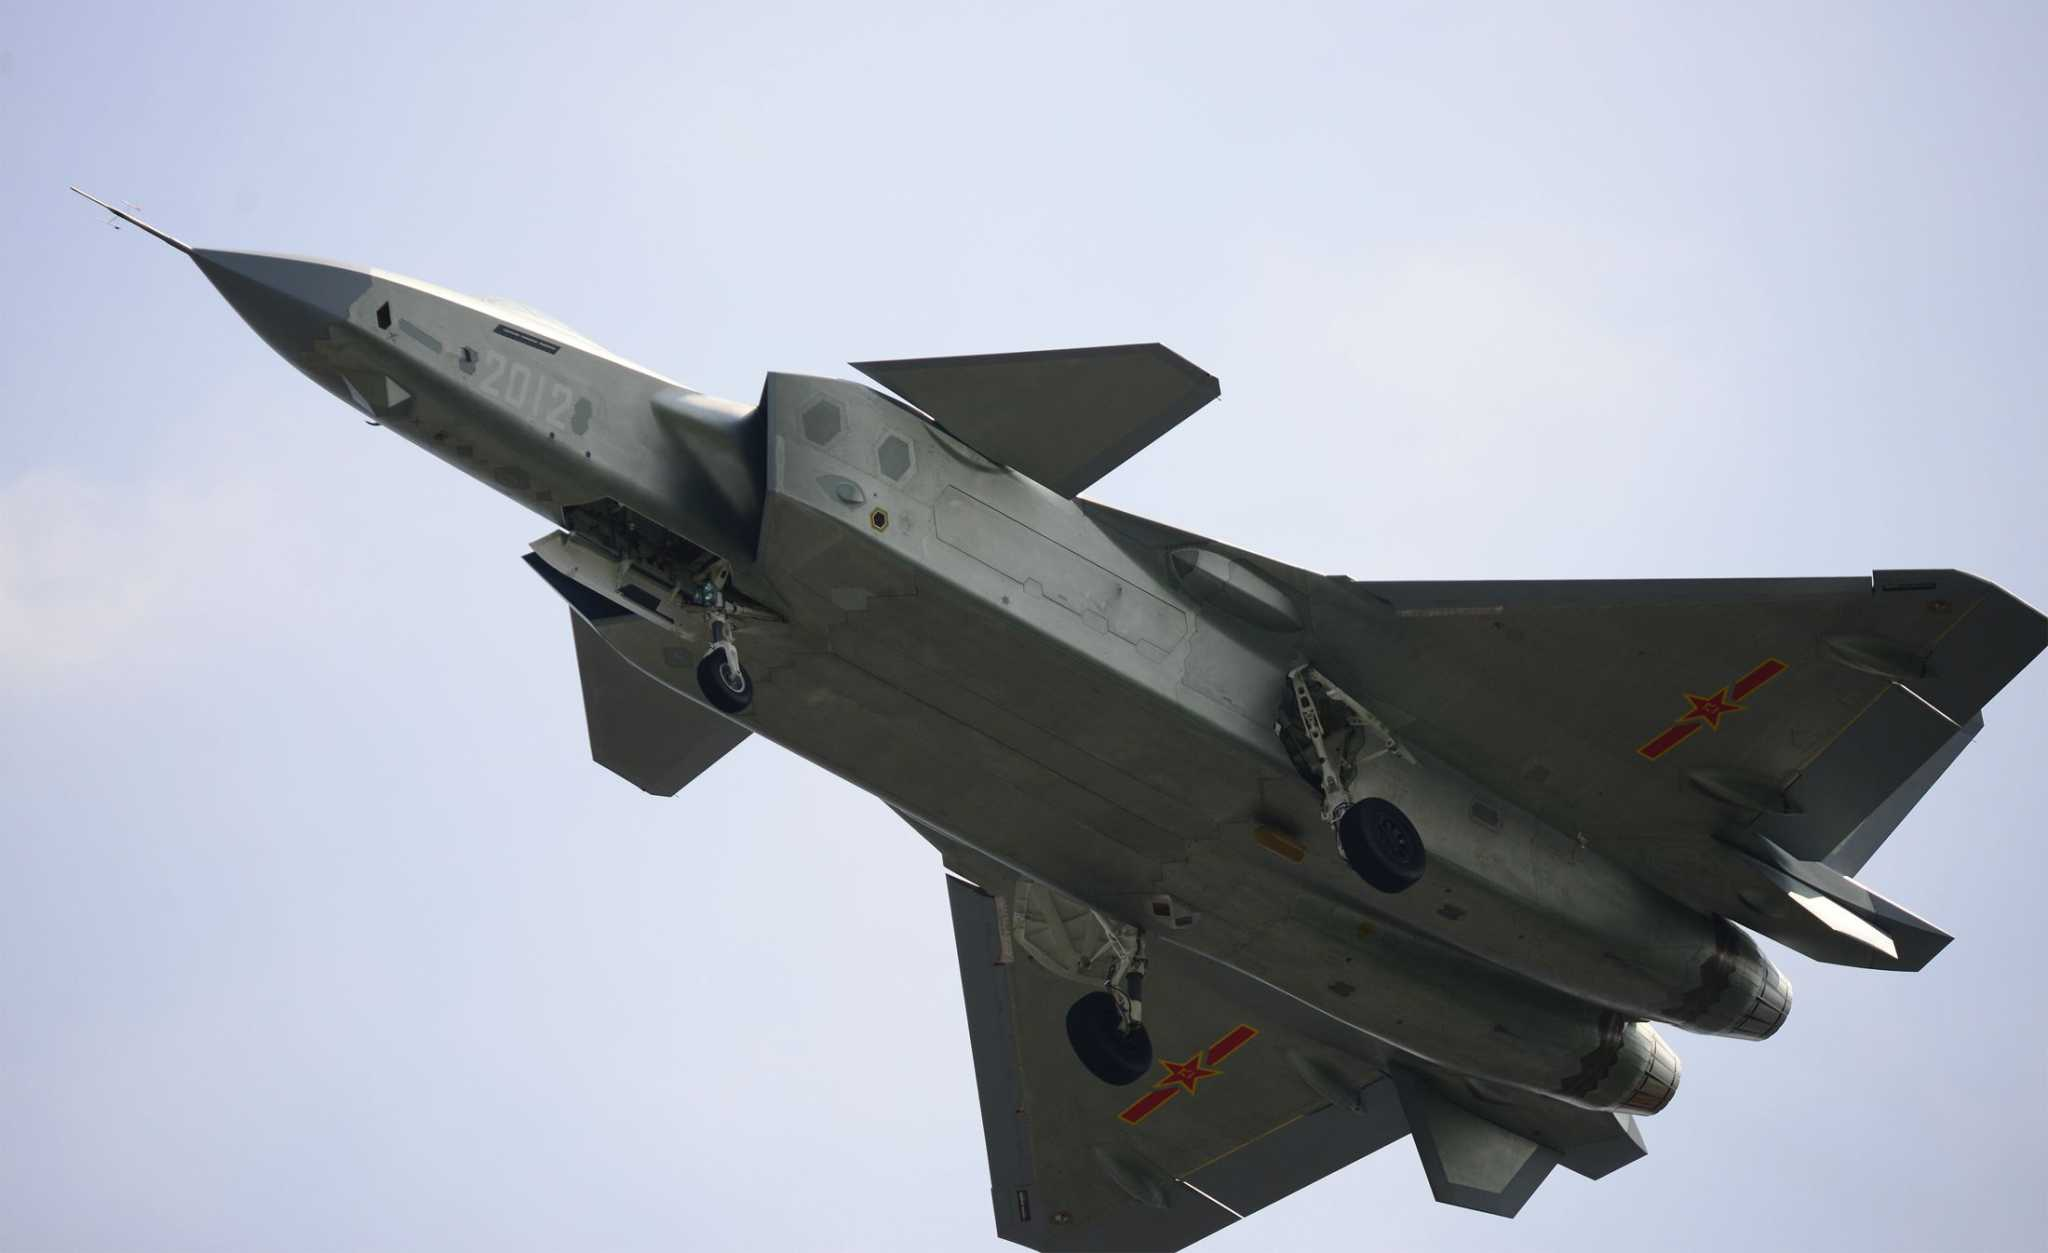 New J-20 Stealth Fighter Prototype Undergoes Flight Tests ...